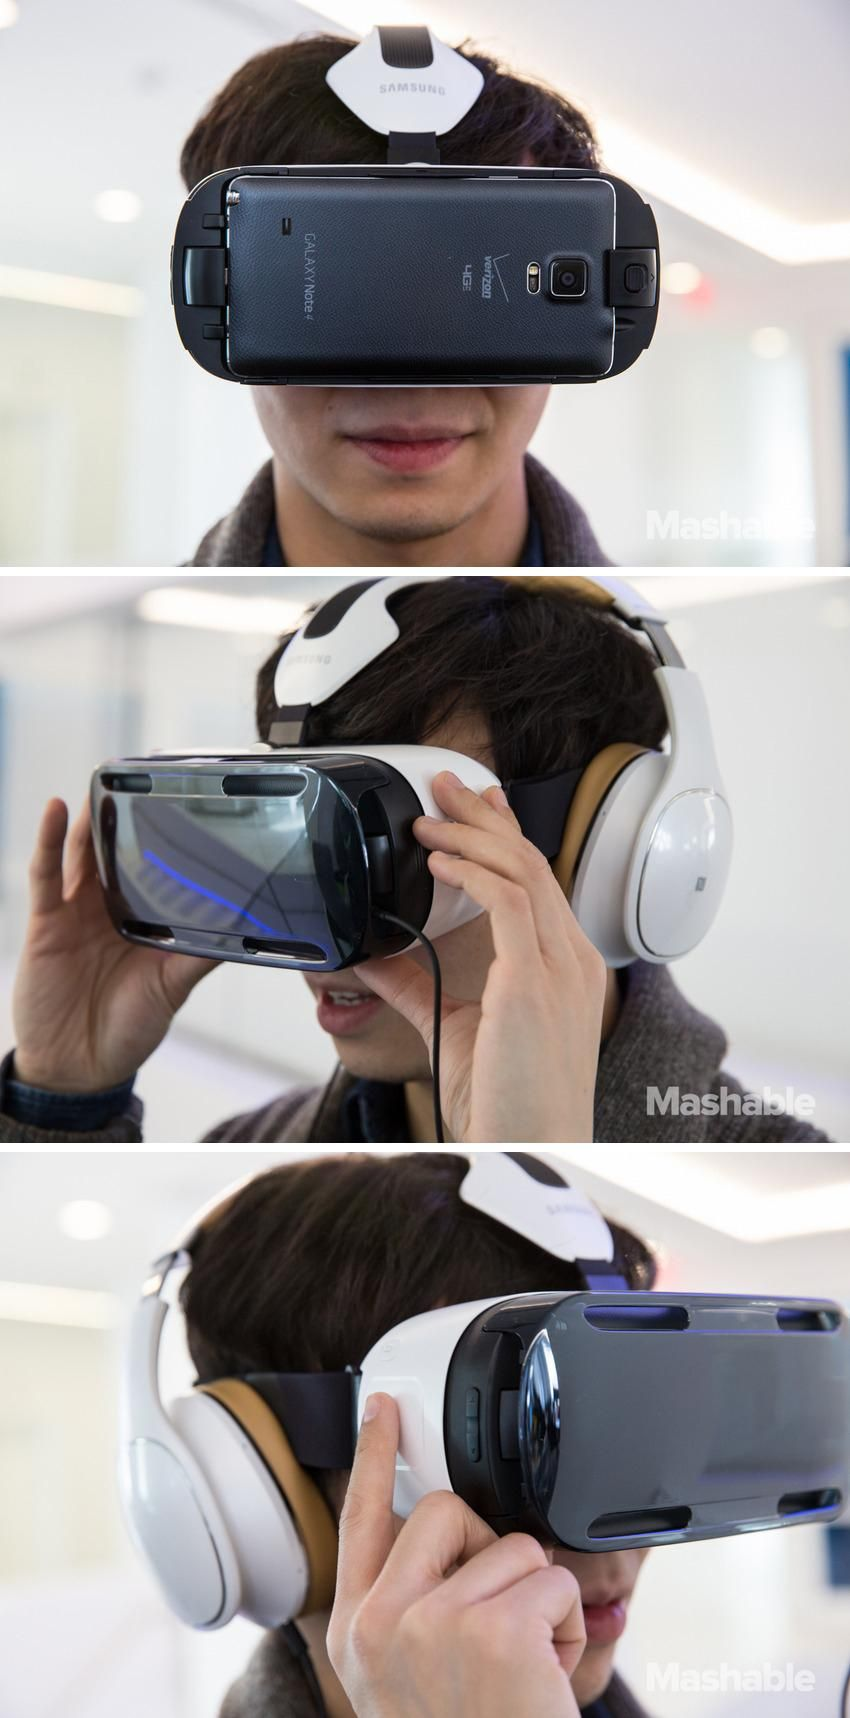 dad1ed1752b2 Samsung Gear VR  The closest you can get to Oculus